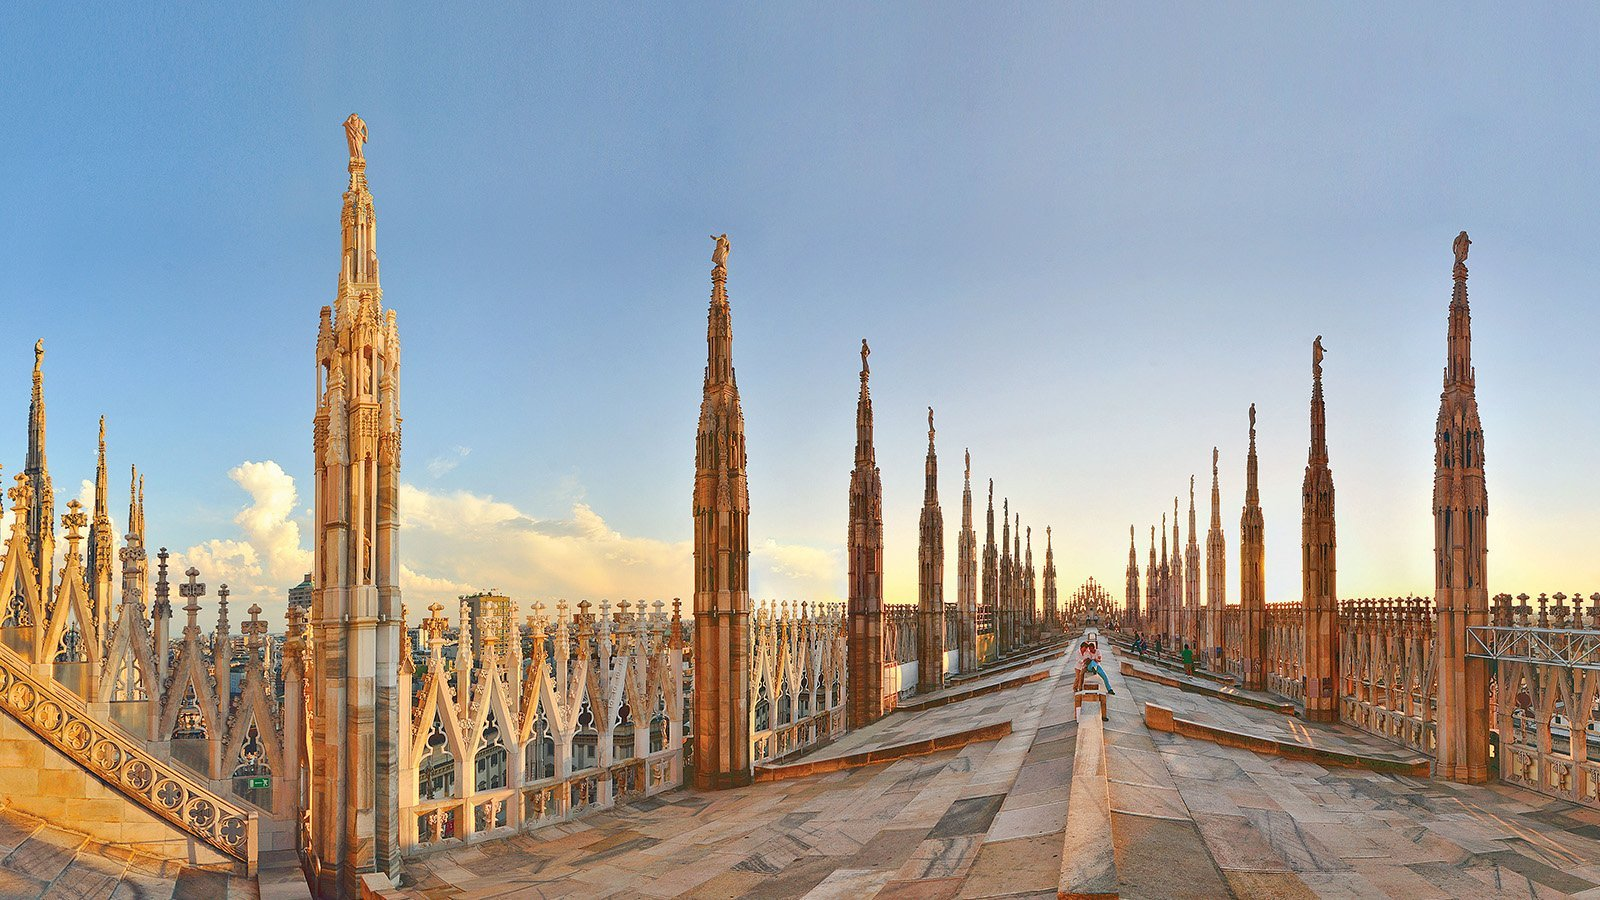 People on the roof of the Duomo Di Milano in Milan